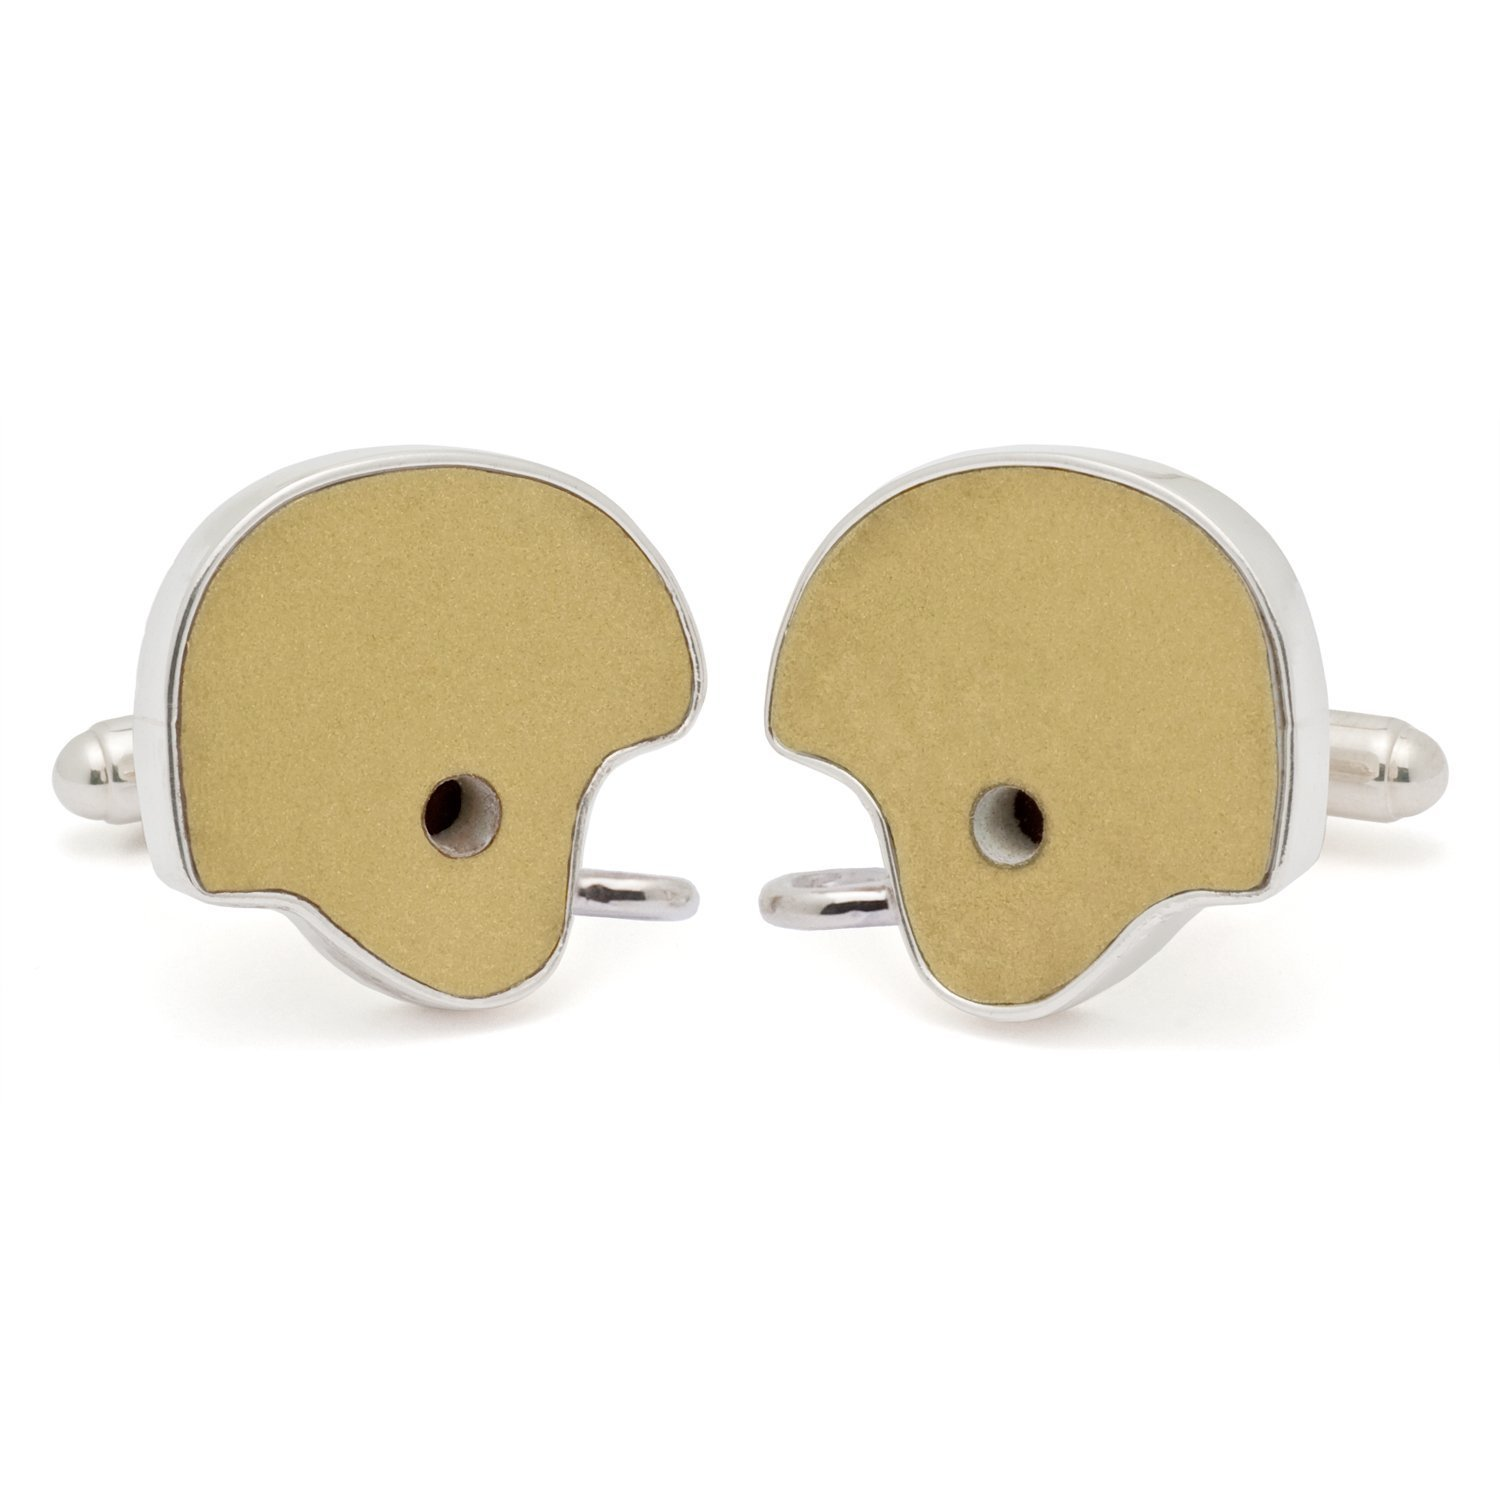 Tokens & Icons Collegiate Football Used Helmet Cufflinks - Notre Dame (16ND) by Tokens & Icons